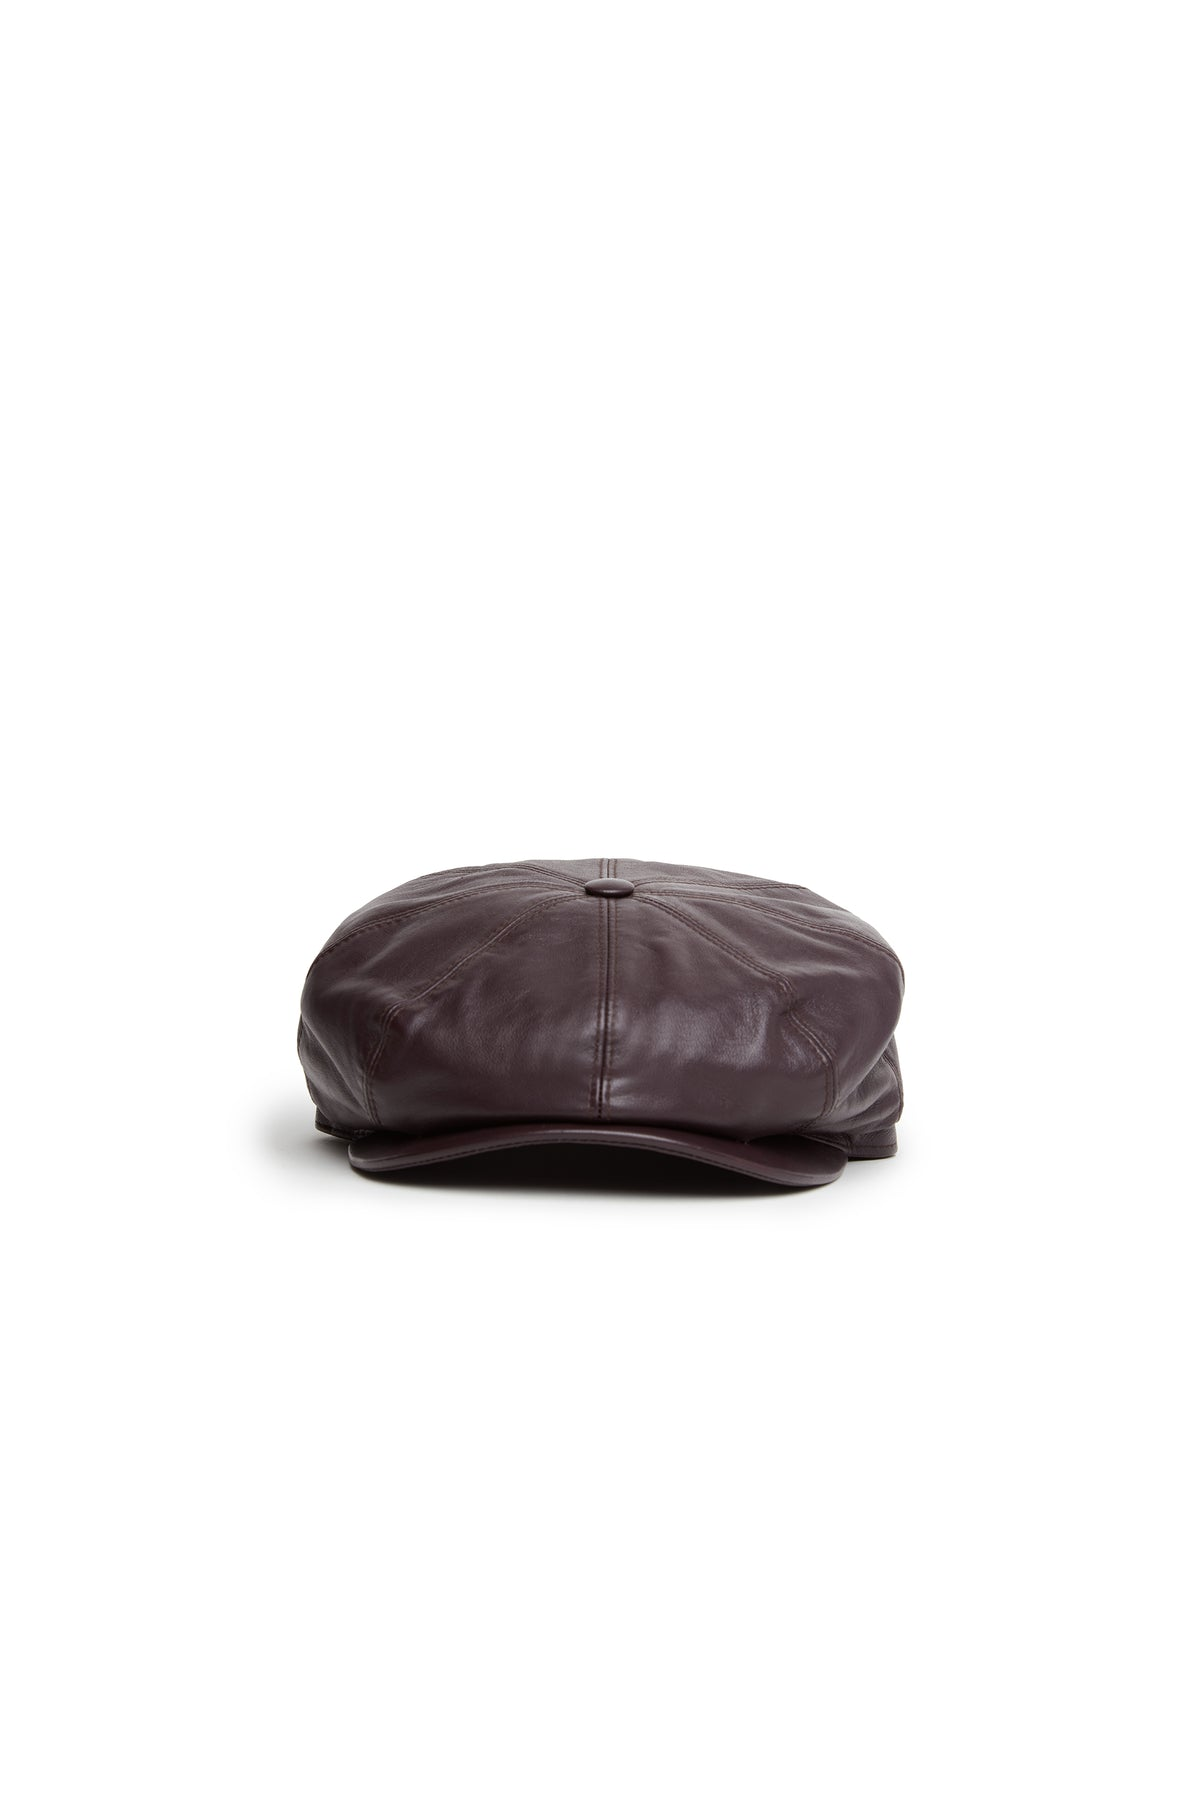 Tremelo Leather Newsboy Cap